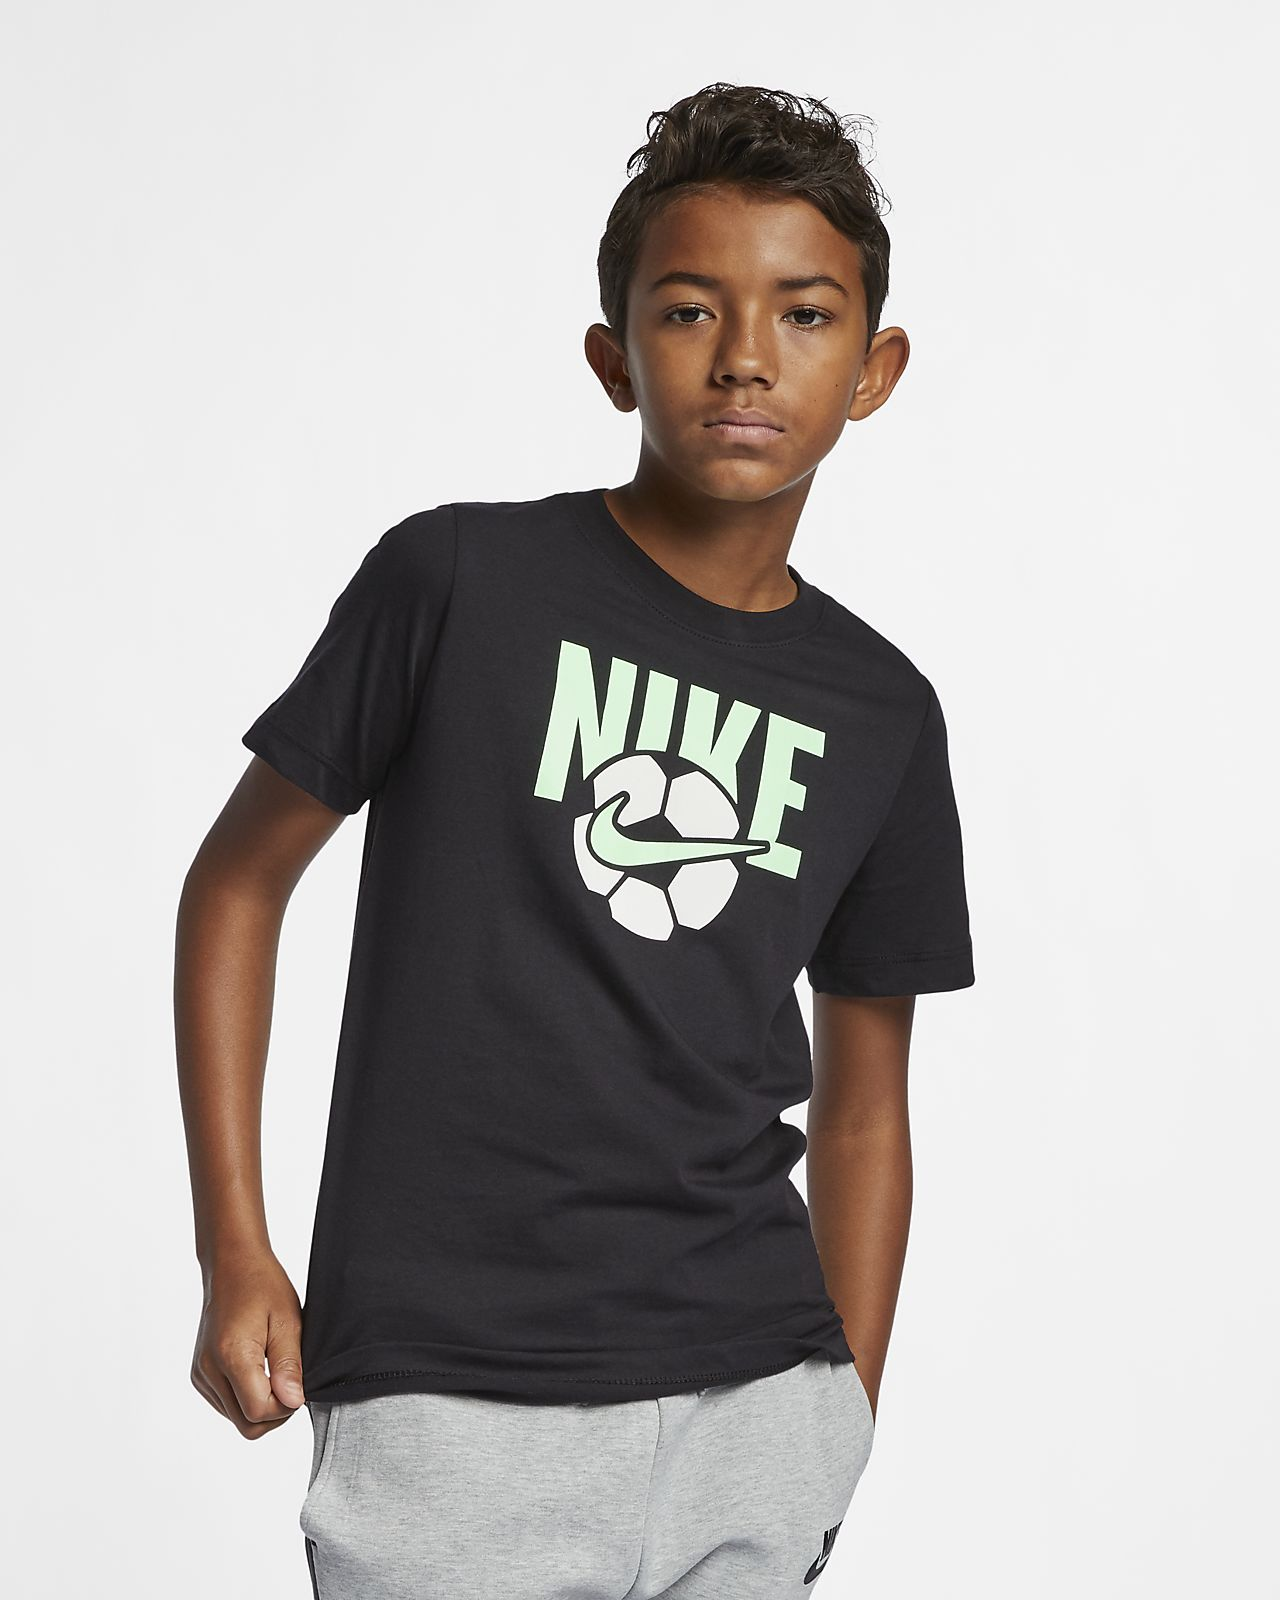 c9ad4d06 Nike Sportswear Older Kids' (Boys') T-Shirt. Nike.com GB